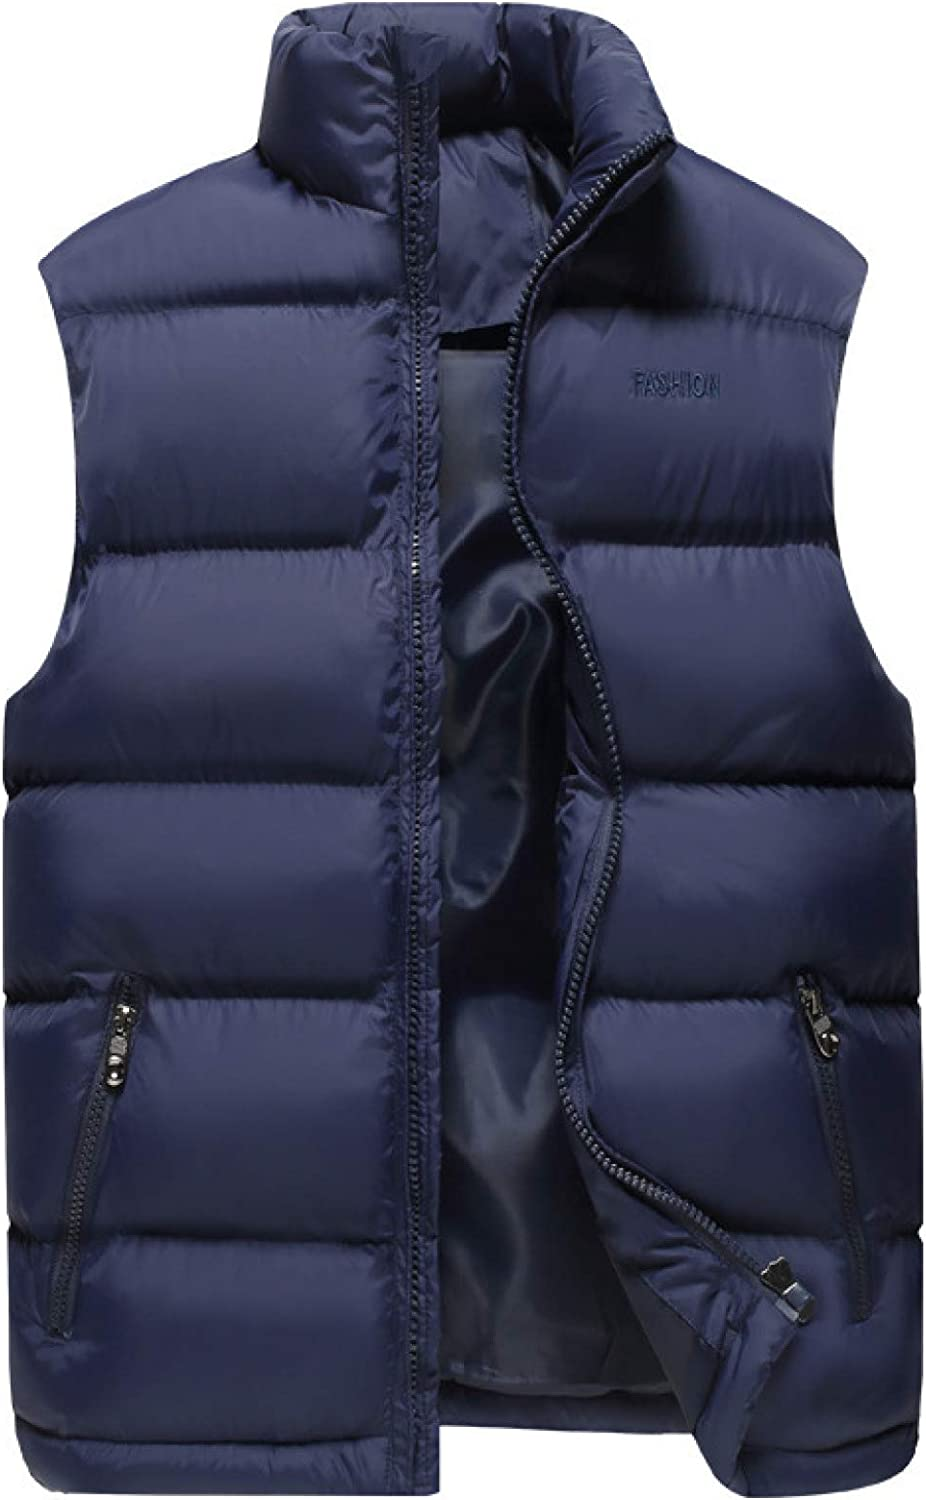 Men's Casual Lightweight Vest Jacket Water-Resistant Quilted Puffer Gilet Outdoor Sport Stand Collar Side Pockets Down Coat